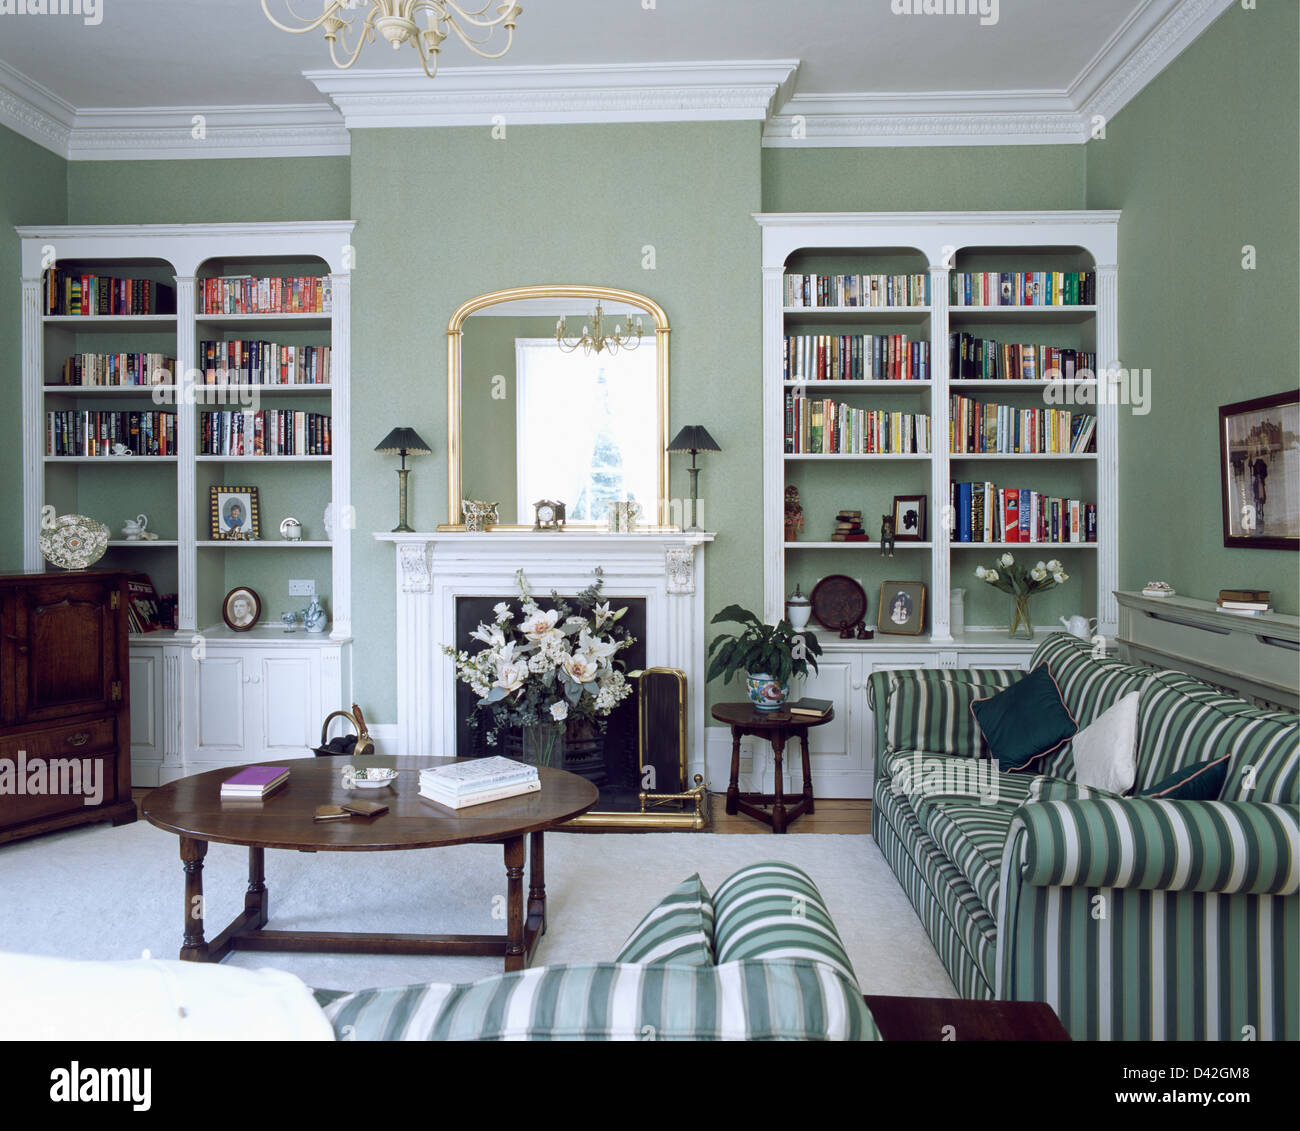 Fitted White Bookcases On Either Side Of Fireplace In Gray Green Living Room With